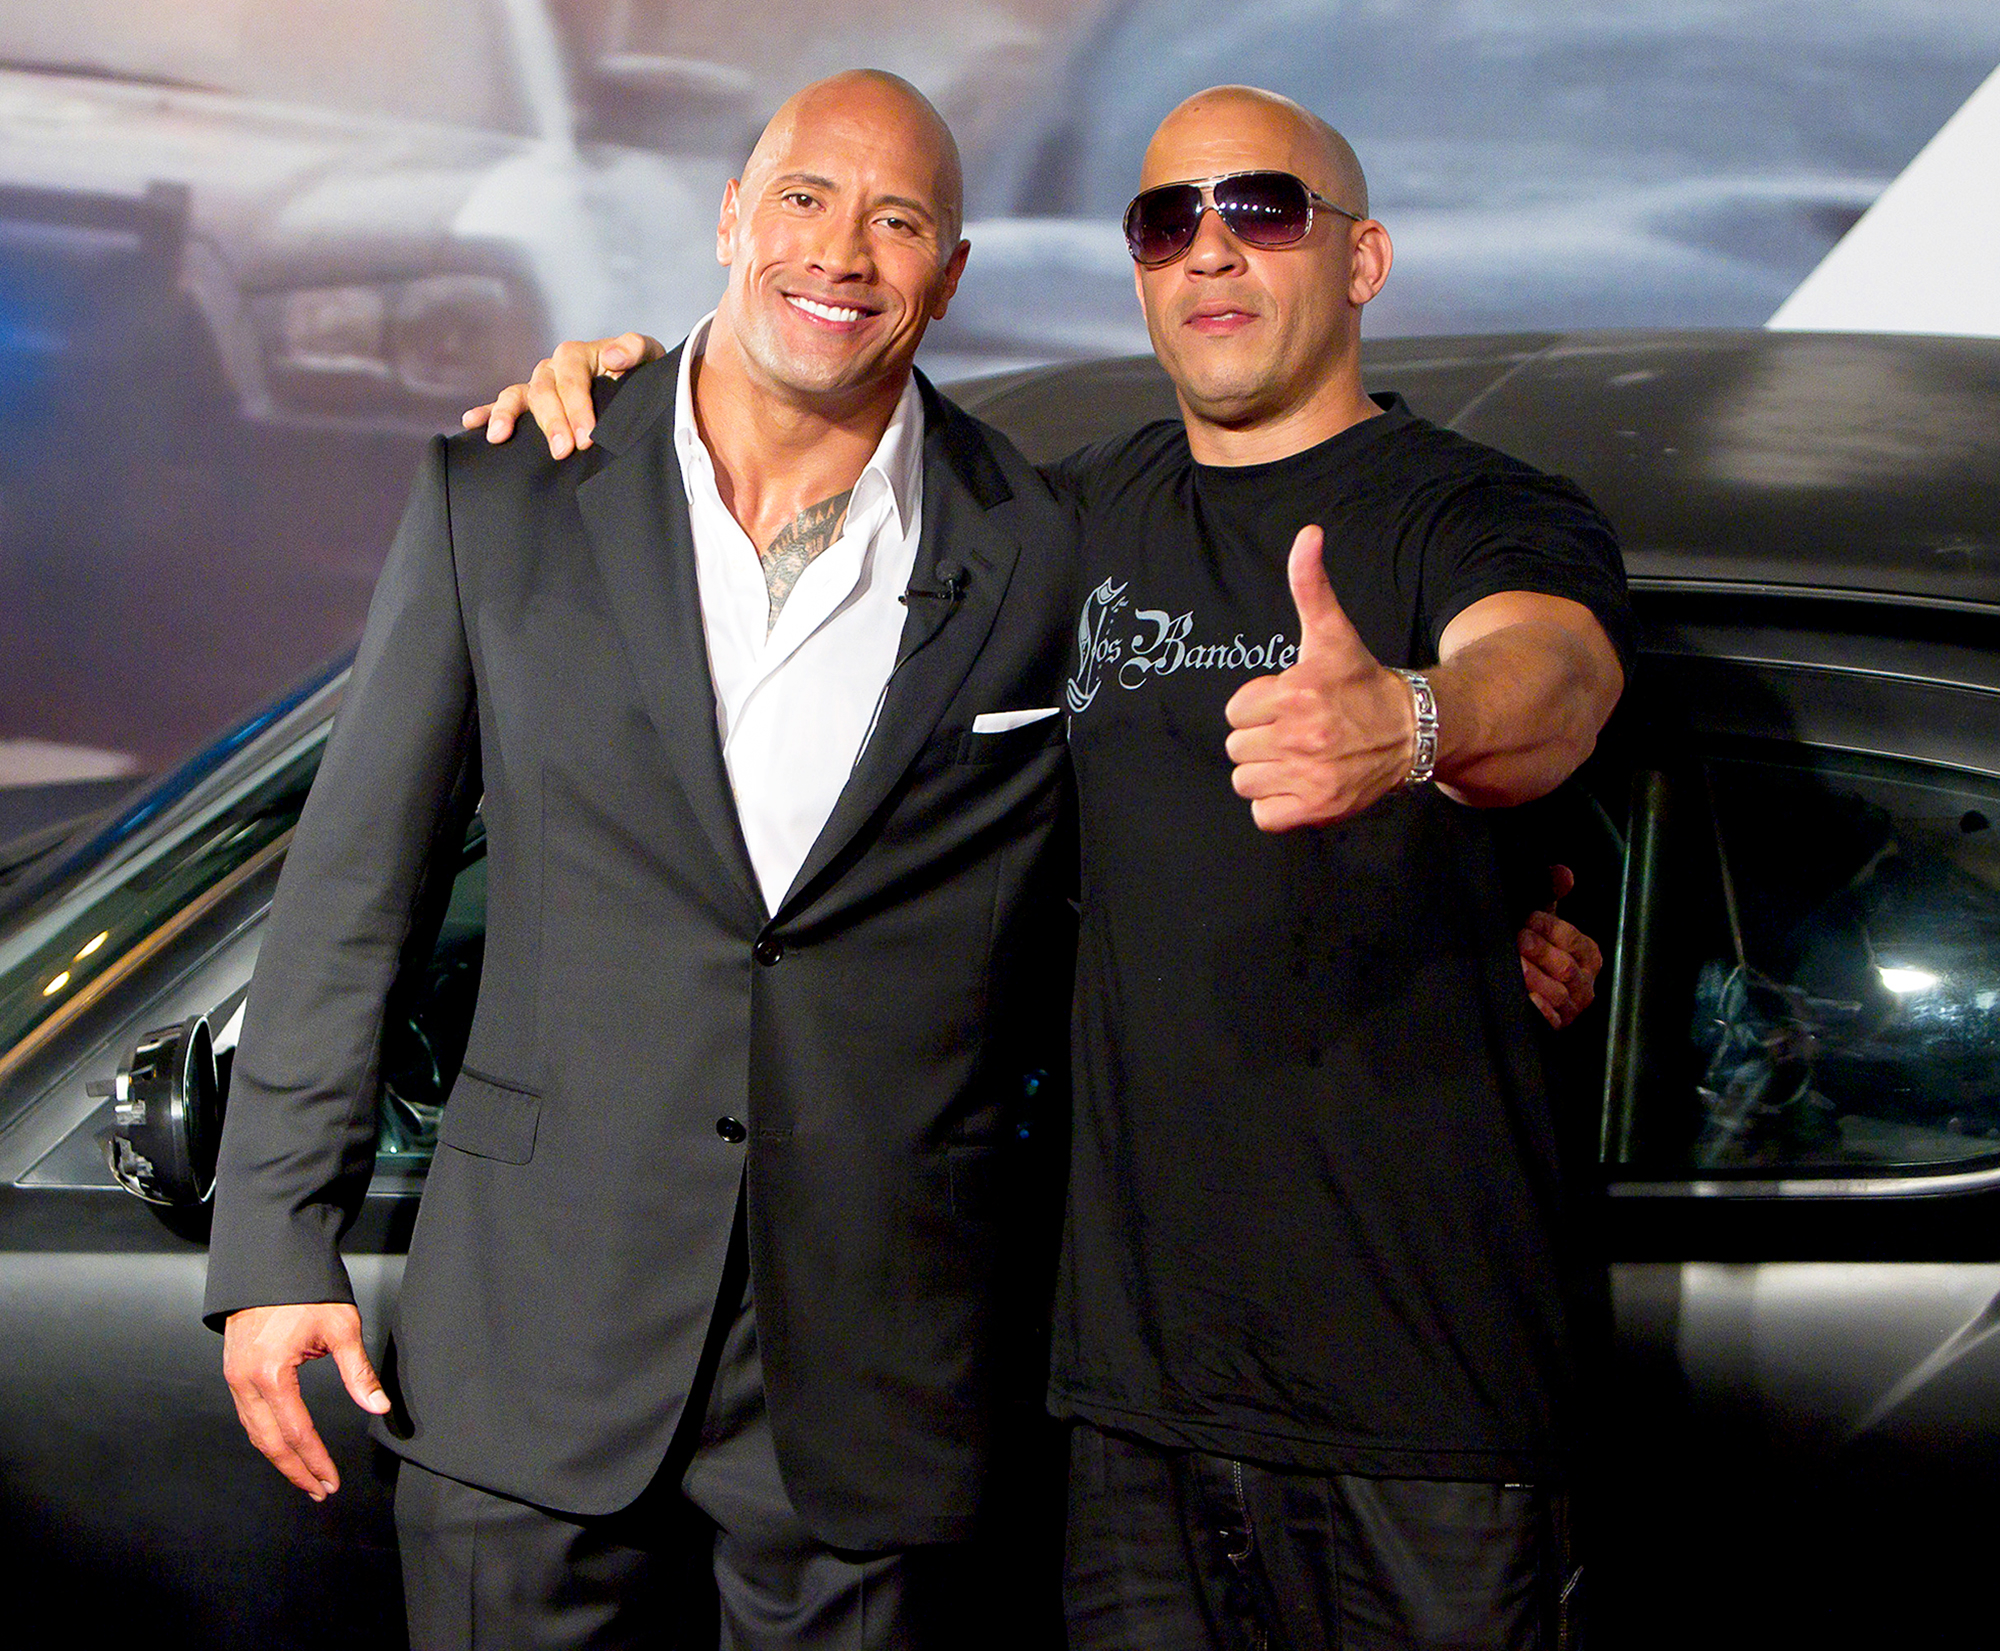 Dwayne Johnson The Rock and Vin Diesel